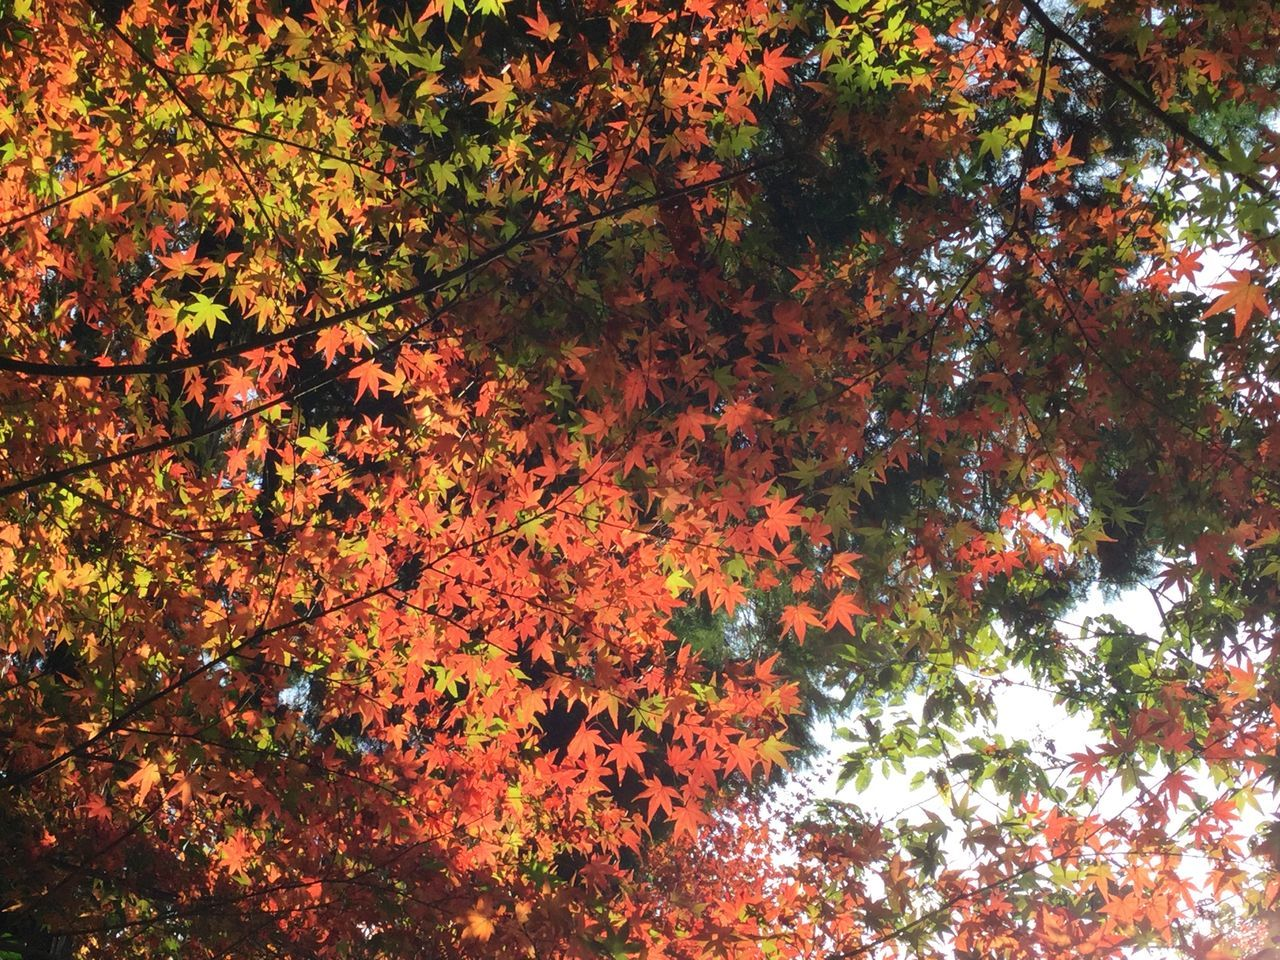 autumn, tree, growth, nature, leaf, beauty in nature, change, branch, low angle view, outdoors, no people, maple leaf, foliage, day